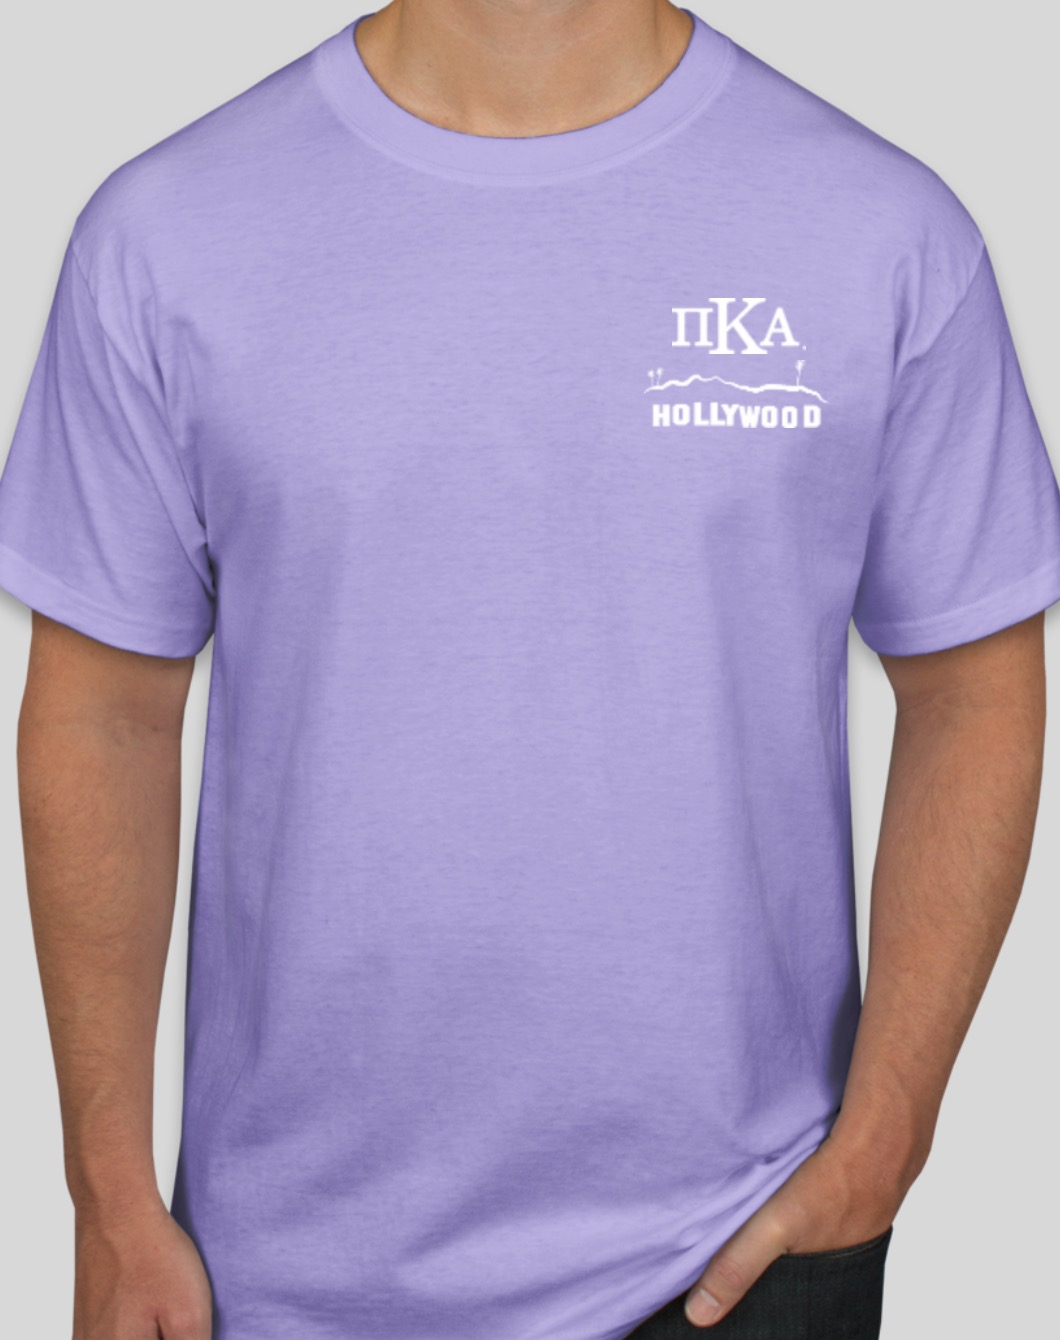 Pike Hollywood MADSS Fundraiser Tshirt (front).jpeg